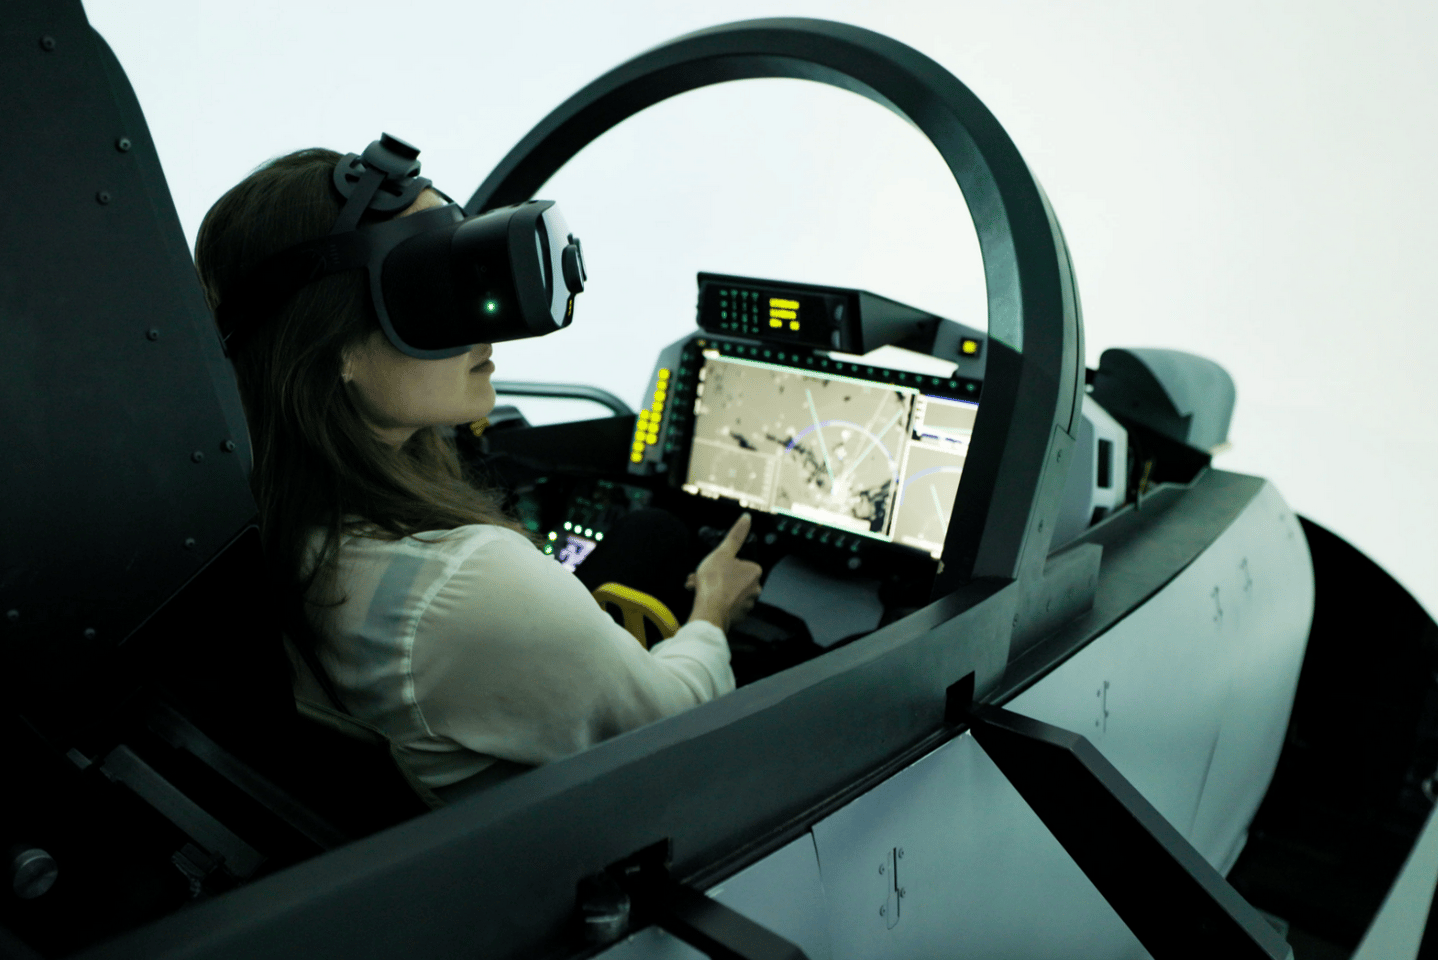 The Bionic Display allows high-resolution images to be generated for Saab's flight simulators using less computing power